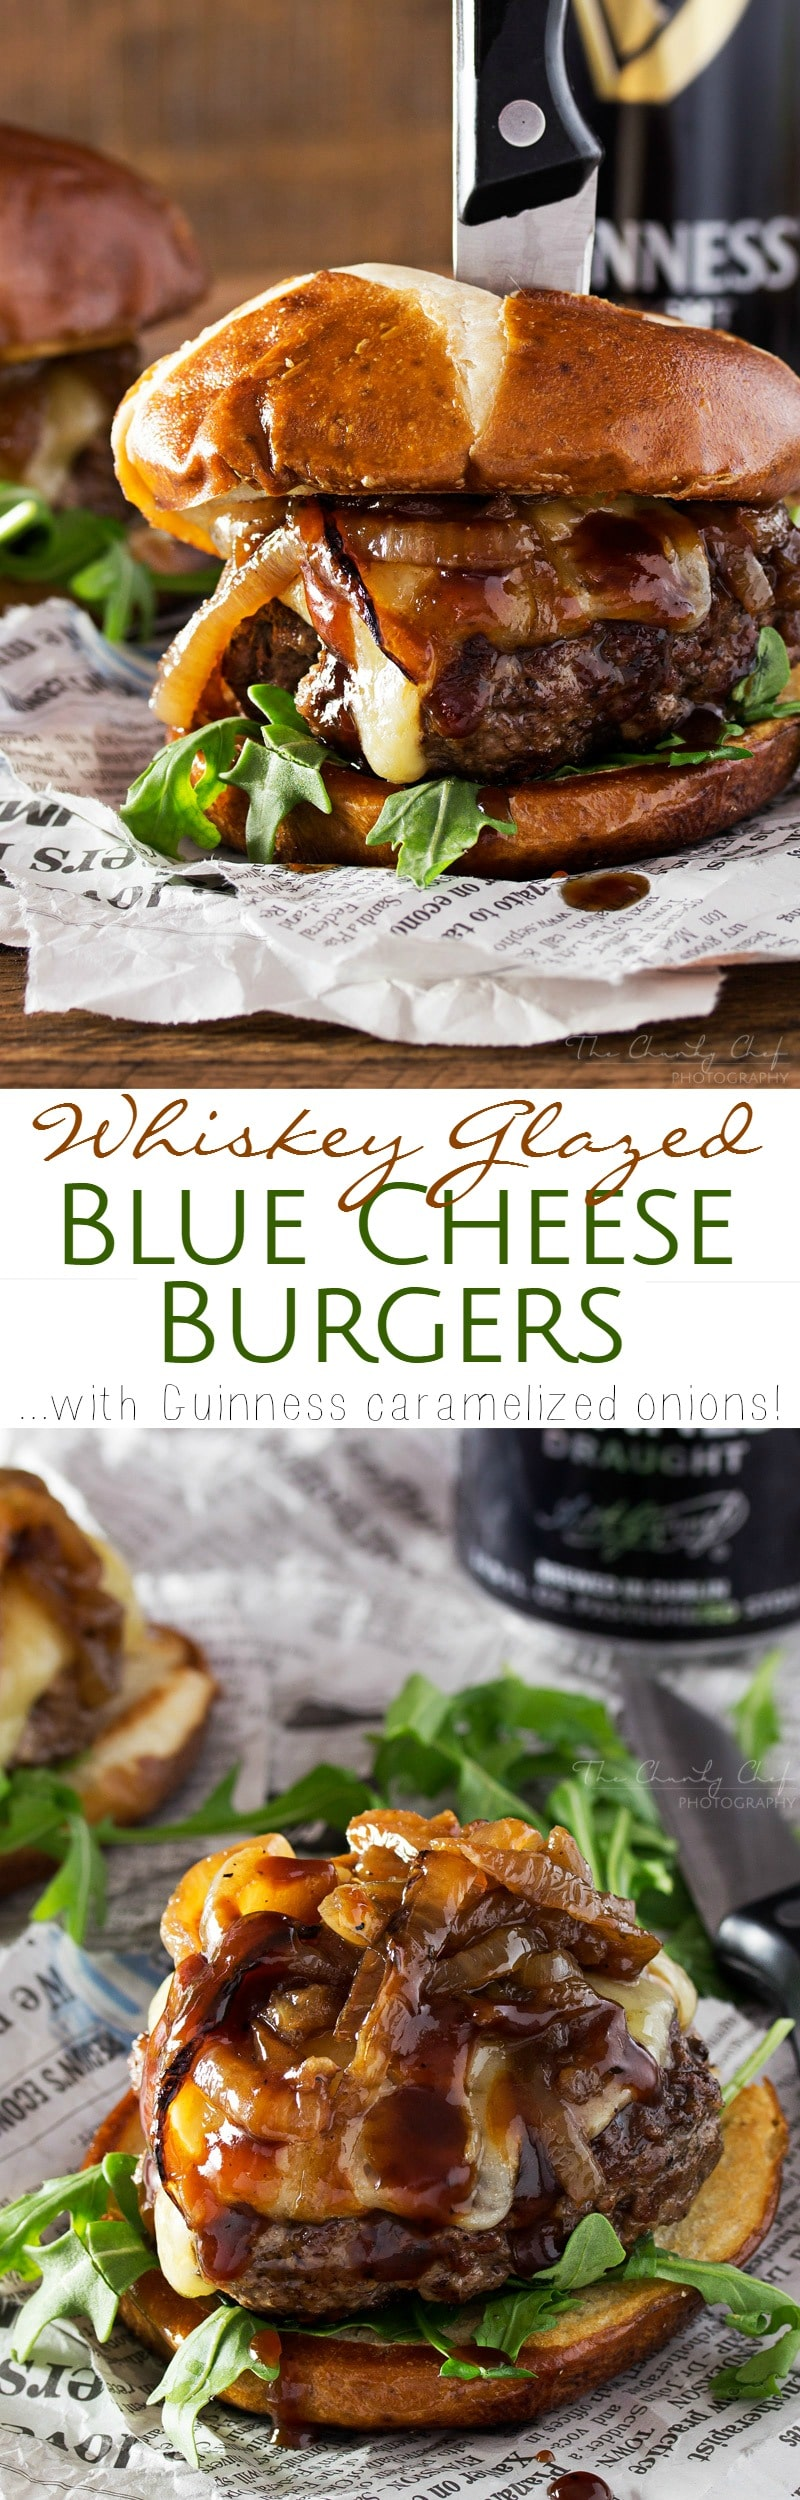 Whiskey Glazed Blue Cheese Burgers - The Chunky Chef